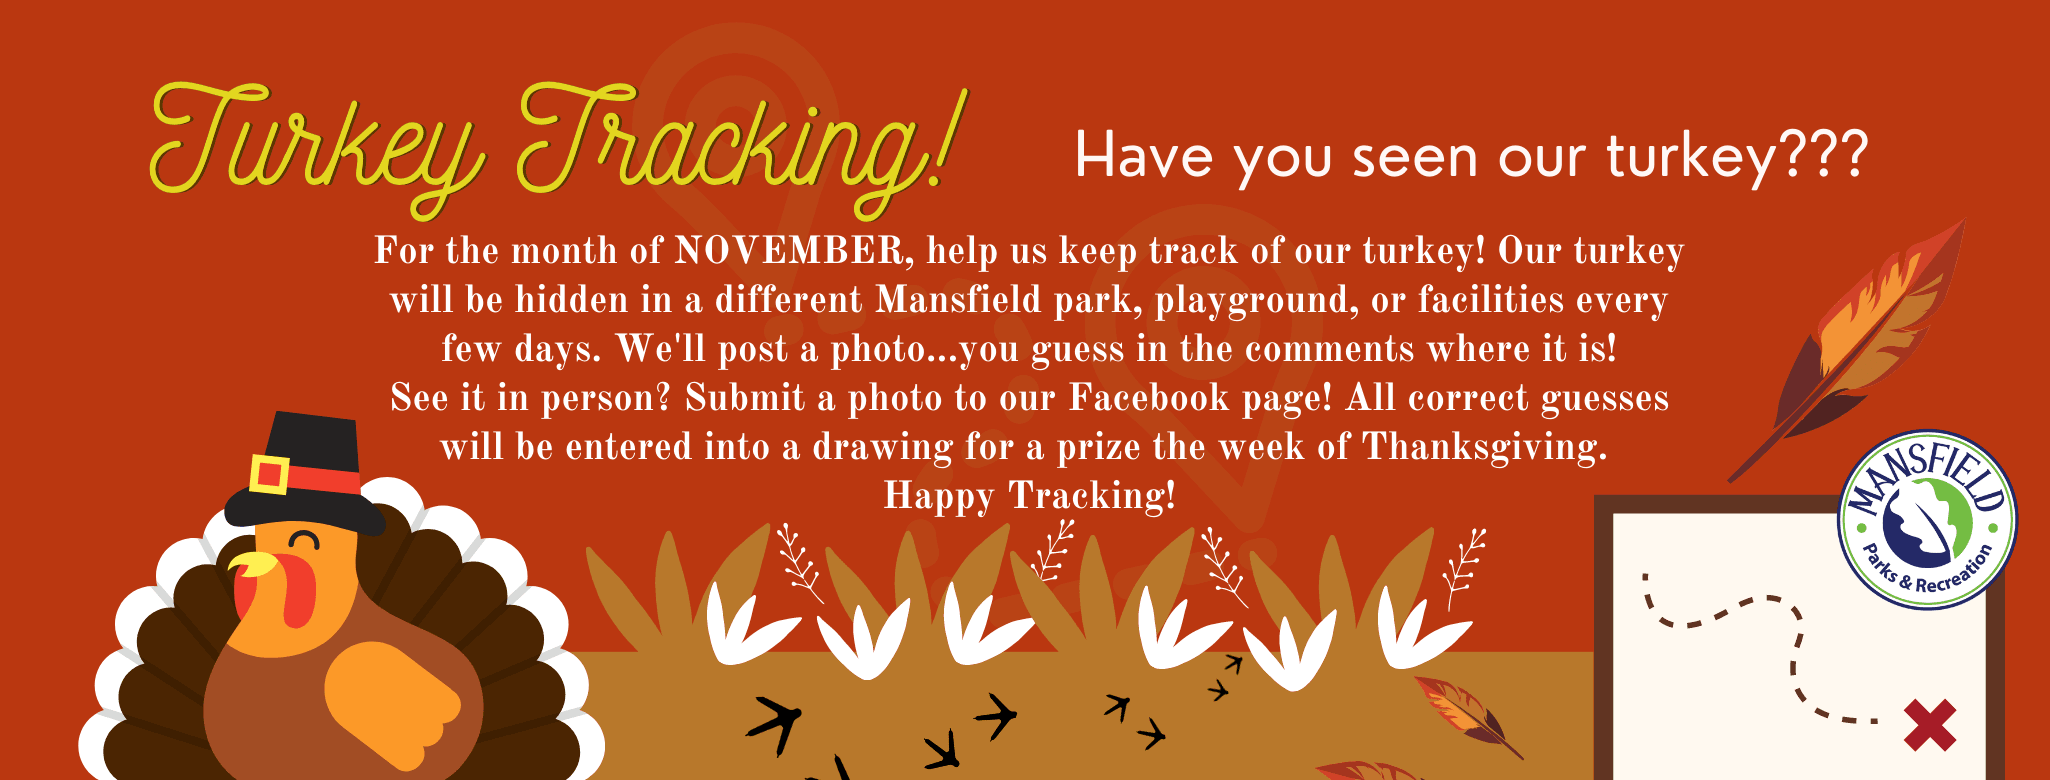 Copy of Turkey Tracking_